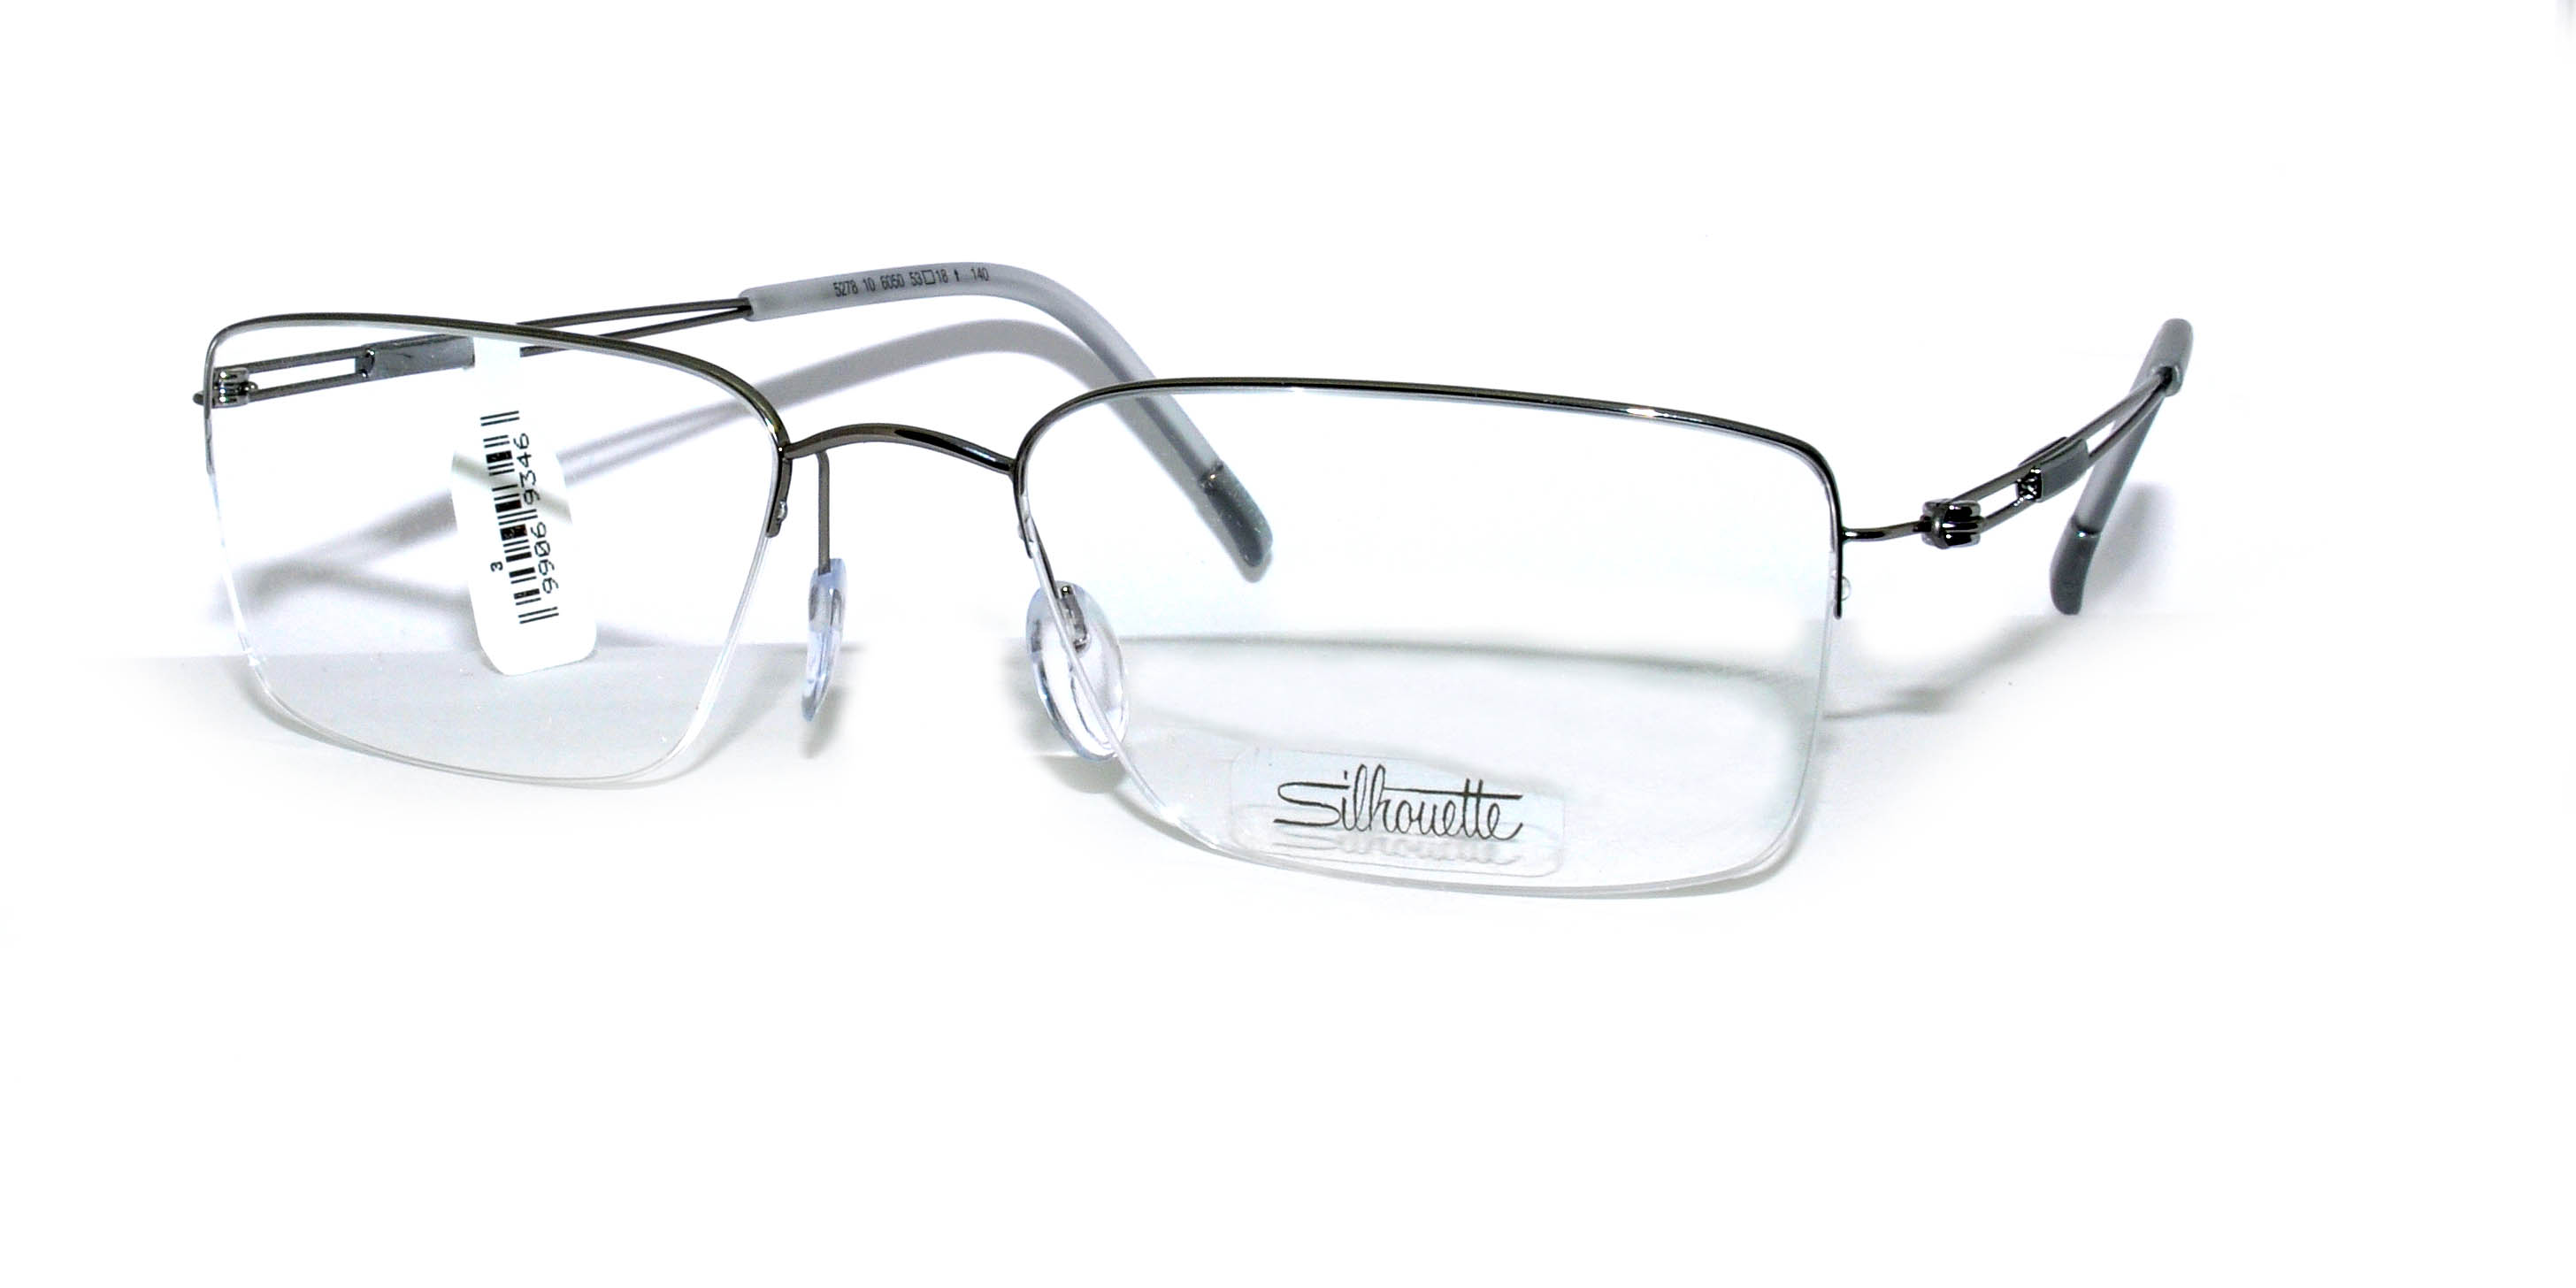 silhouette model tng nylor 5278 colour code 6050 frame colour silver